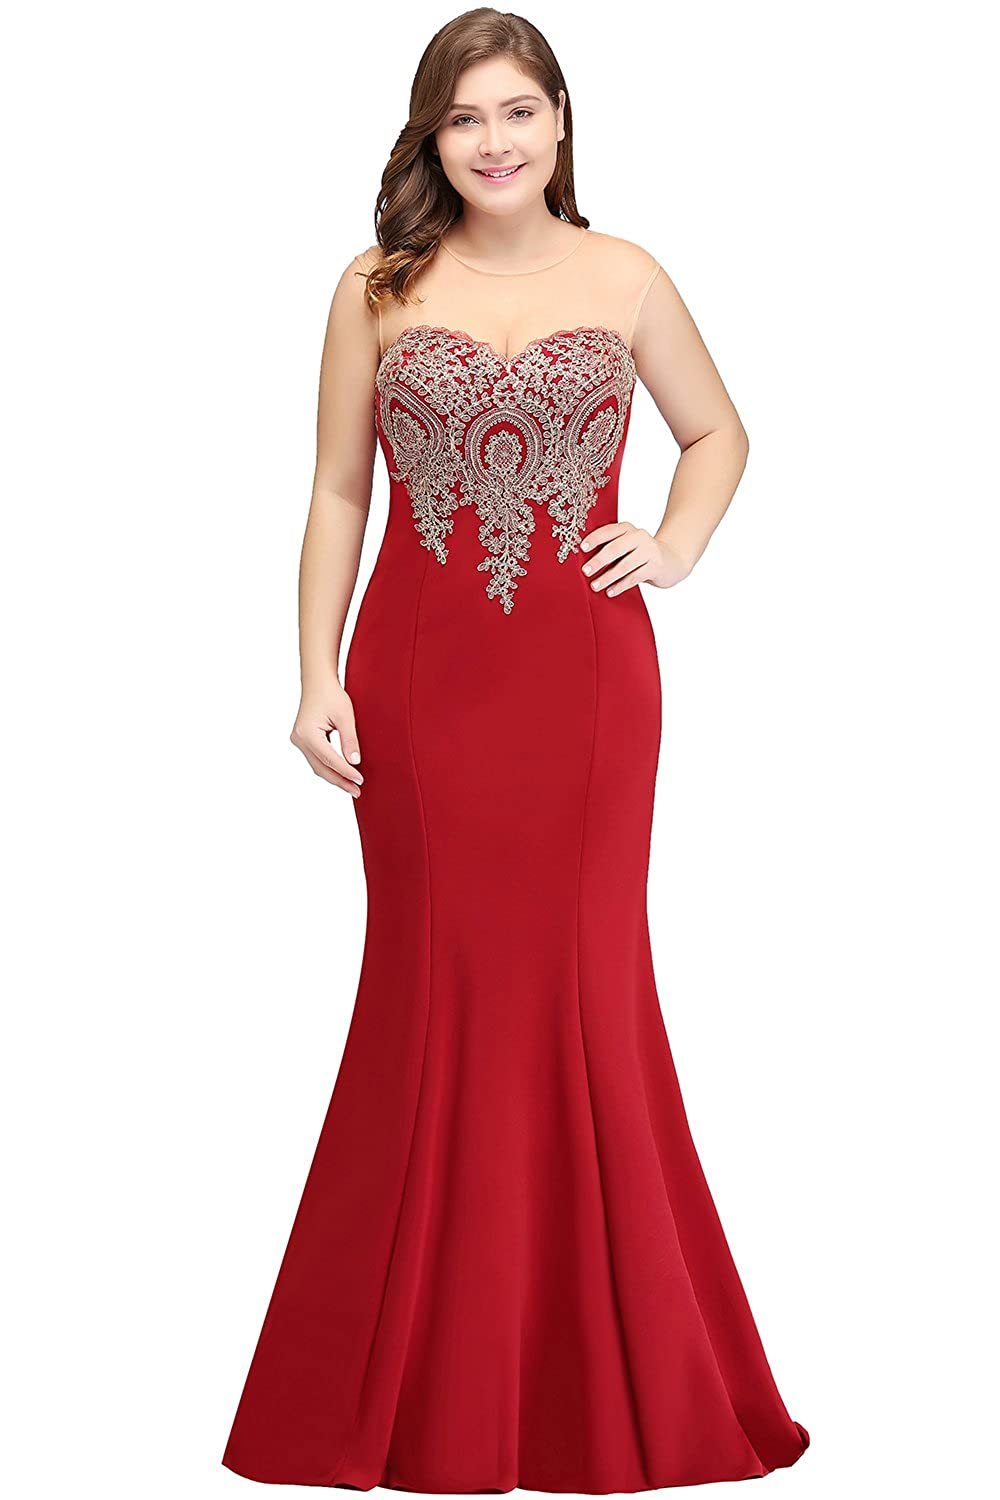 e762937358458 Babyonlinedress Plus Size Gold Lace Mermaid Prom Dress Long Cocktail  Evening Formal Dresses at Amazon Women s Clothing store